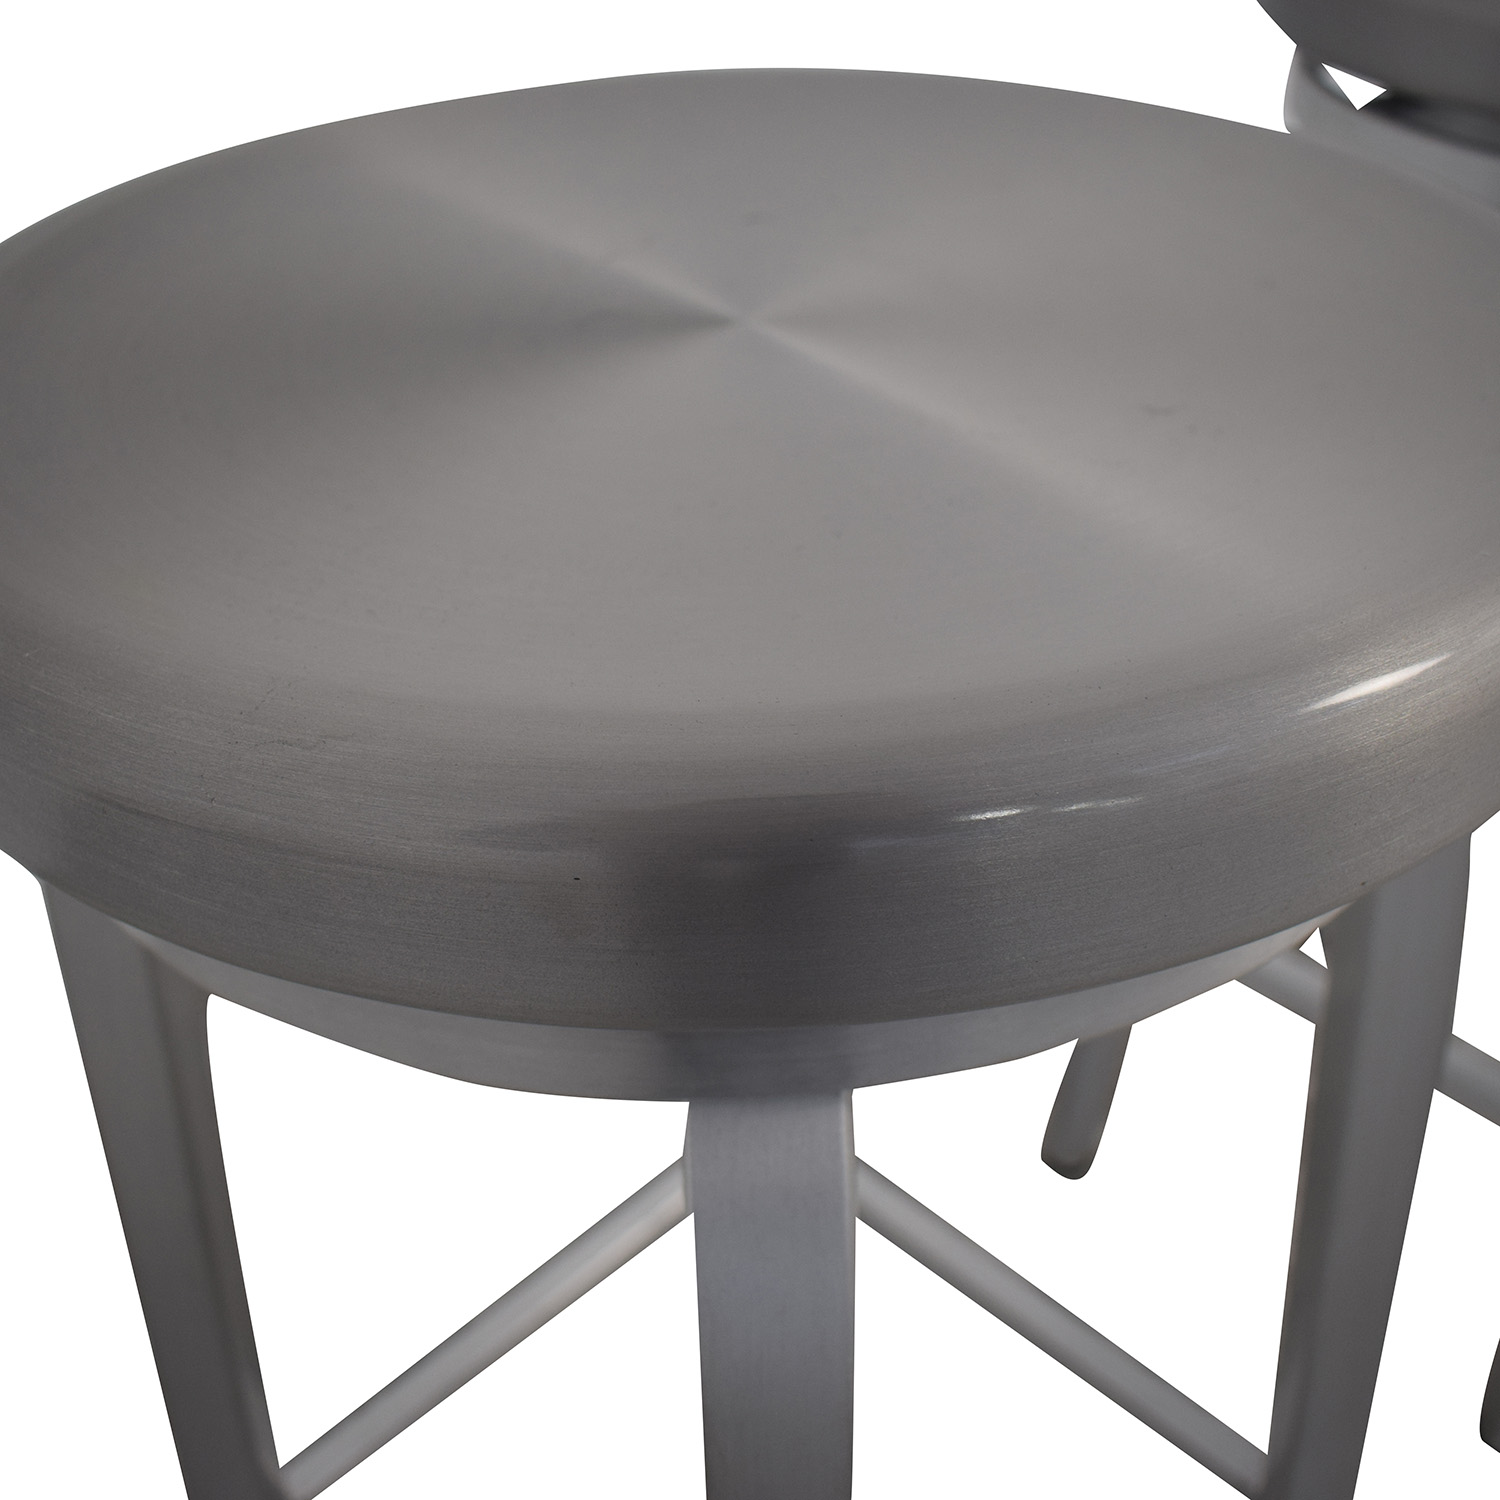 Crate & Barrel Stainless Steel Stools / Chairs